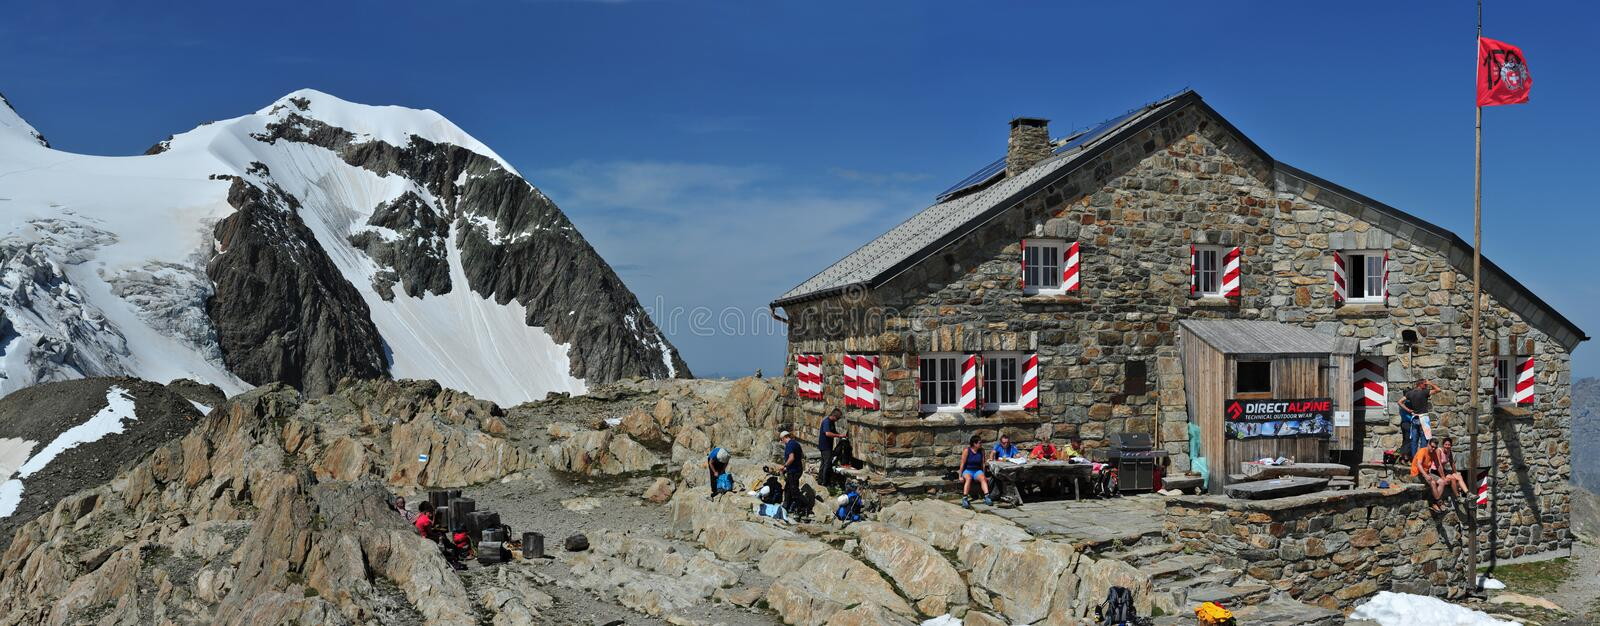 Tierbergli hut royalty free stock photos